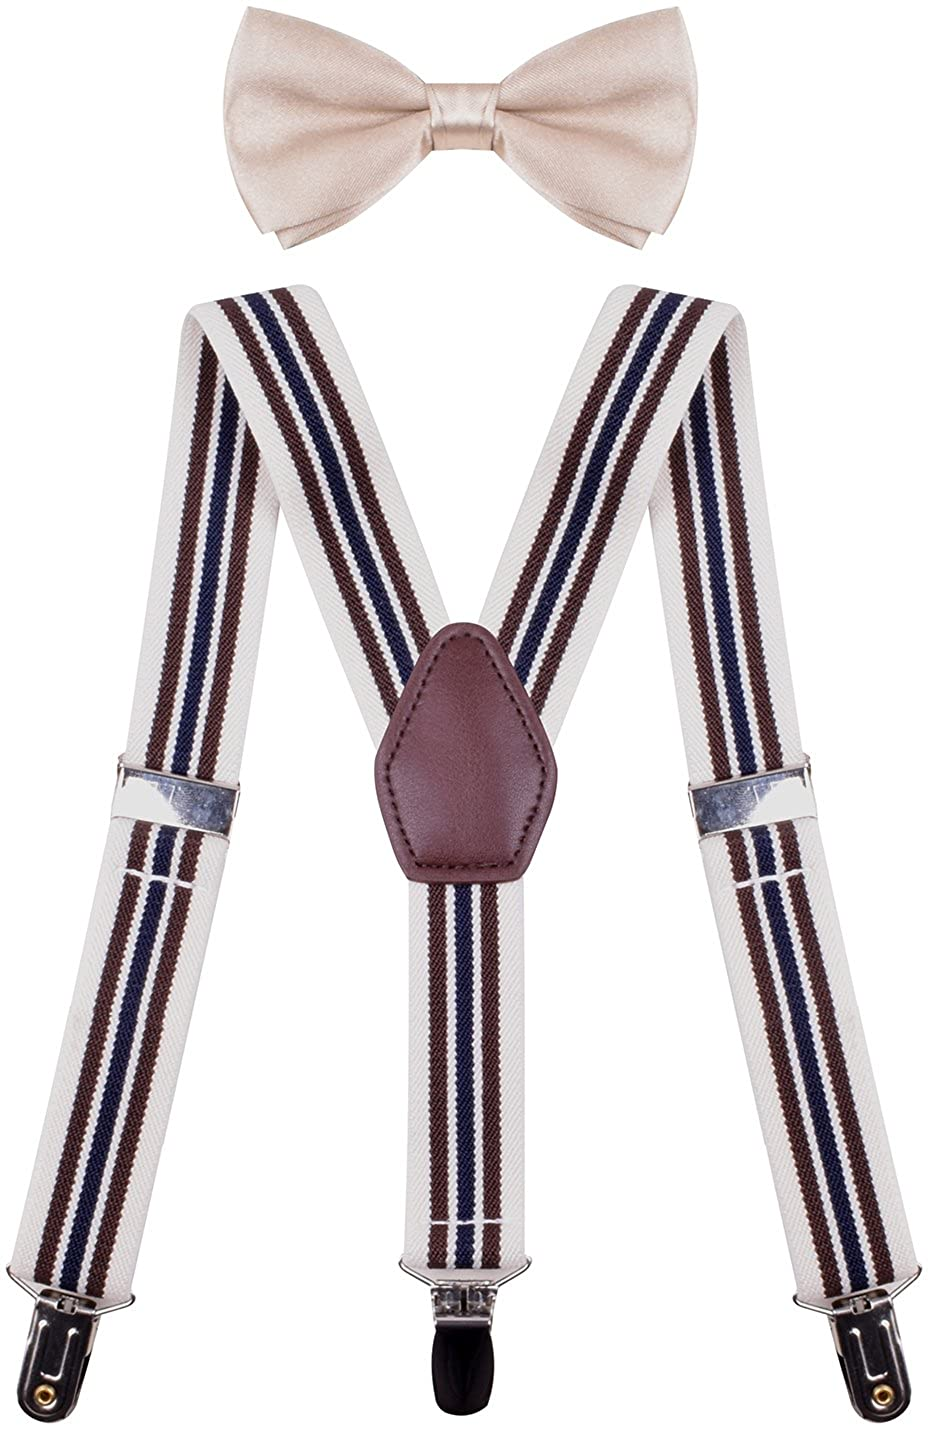 ORSKY Mens Boys Suspenders with Bow Tie Set Adjustable Y Back YHUWEGGV022556